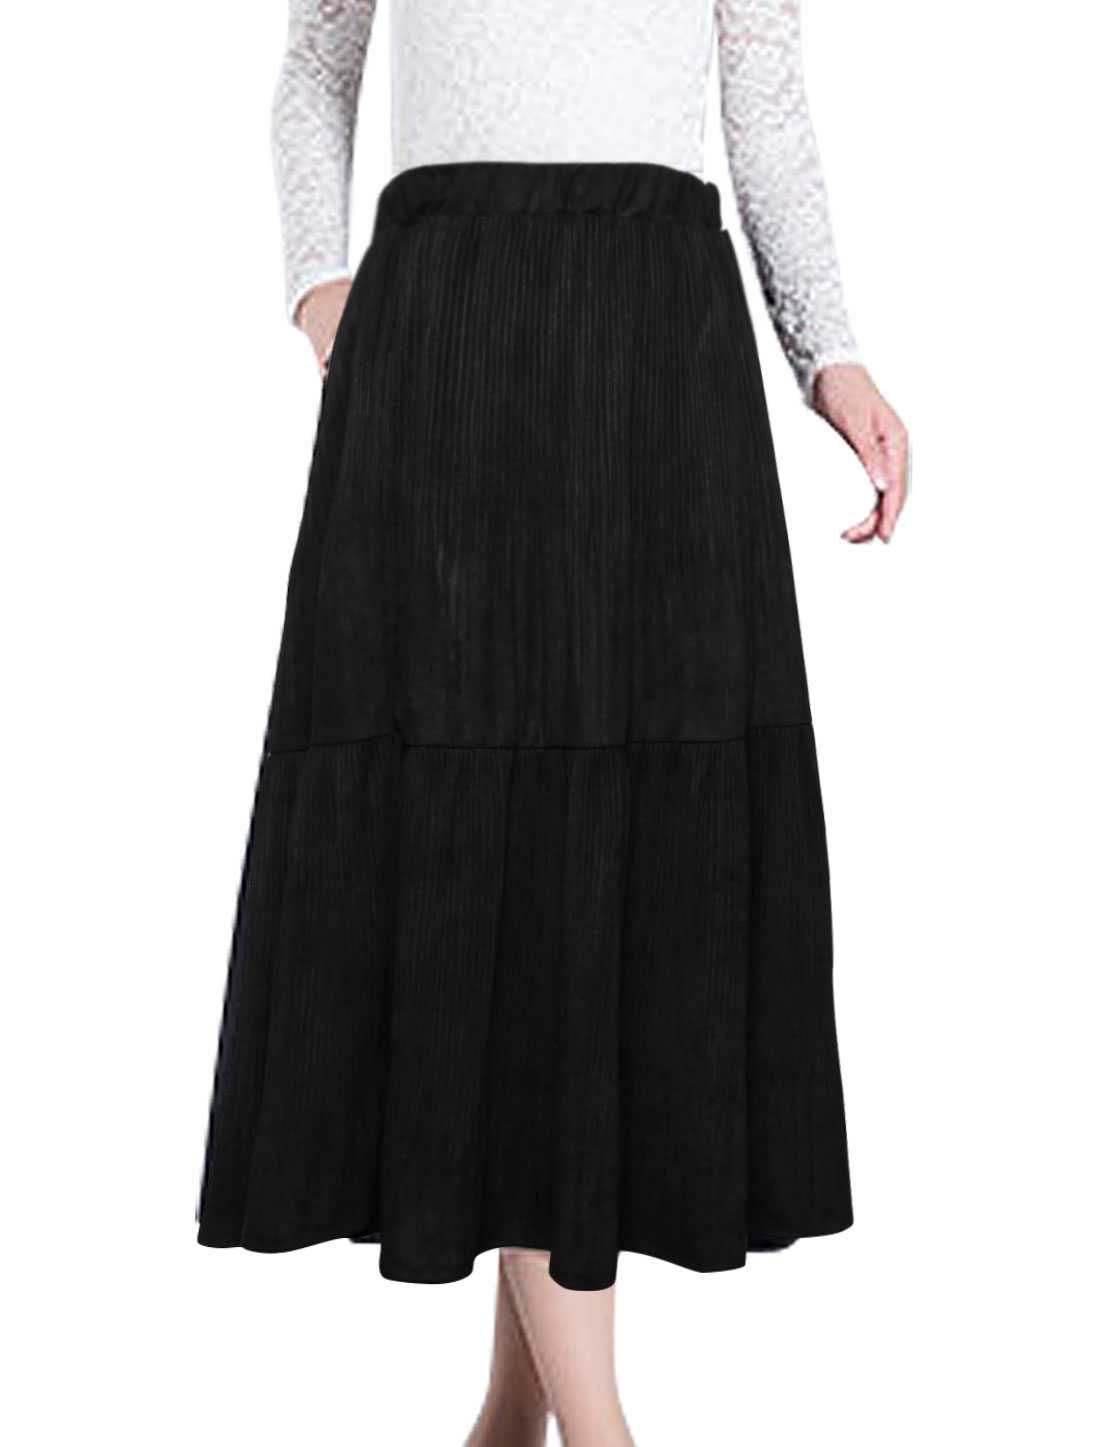 Women Elastic Waist Flare Mid-Calf Pleated Skirt Black XS